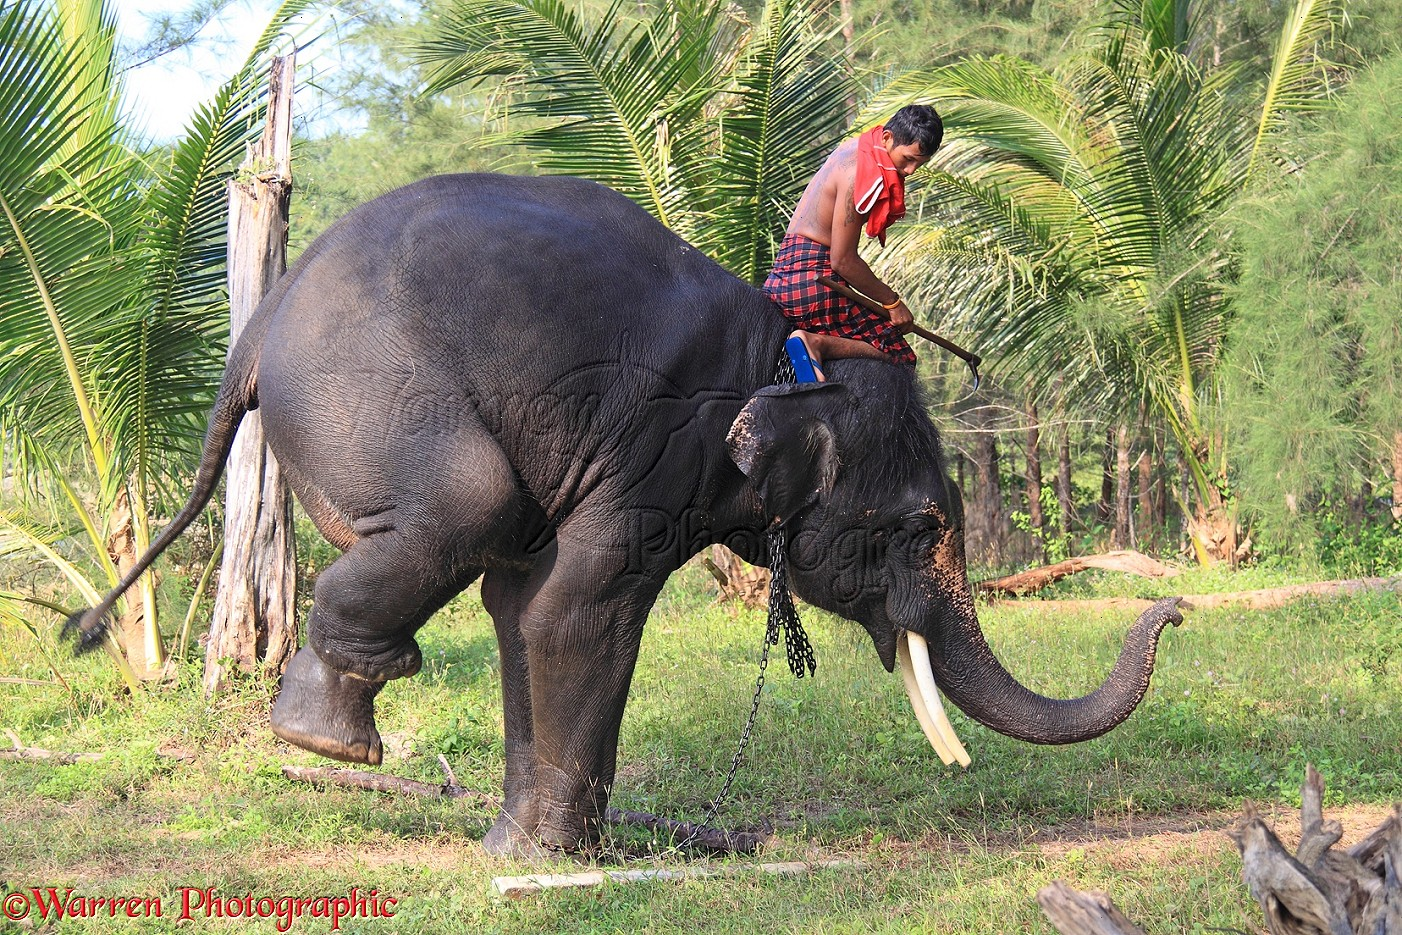 Mahout, getting his elephant to perform a trick photo - WP31671